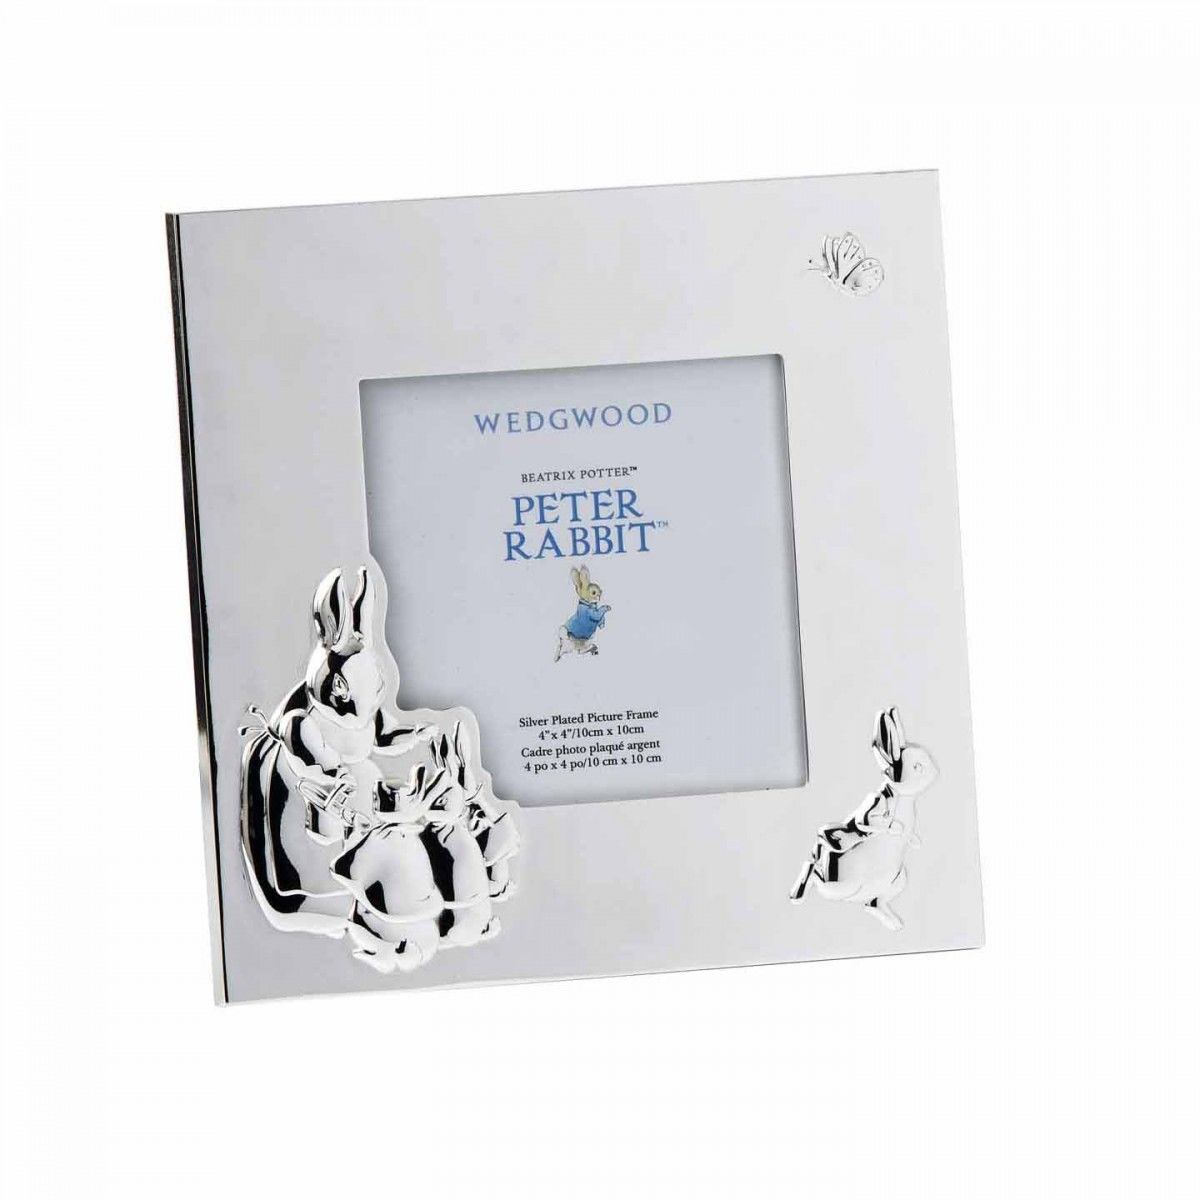 Peter Rabbit Peter Rabbit Silver-Plated 9cm Photo Frame